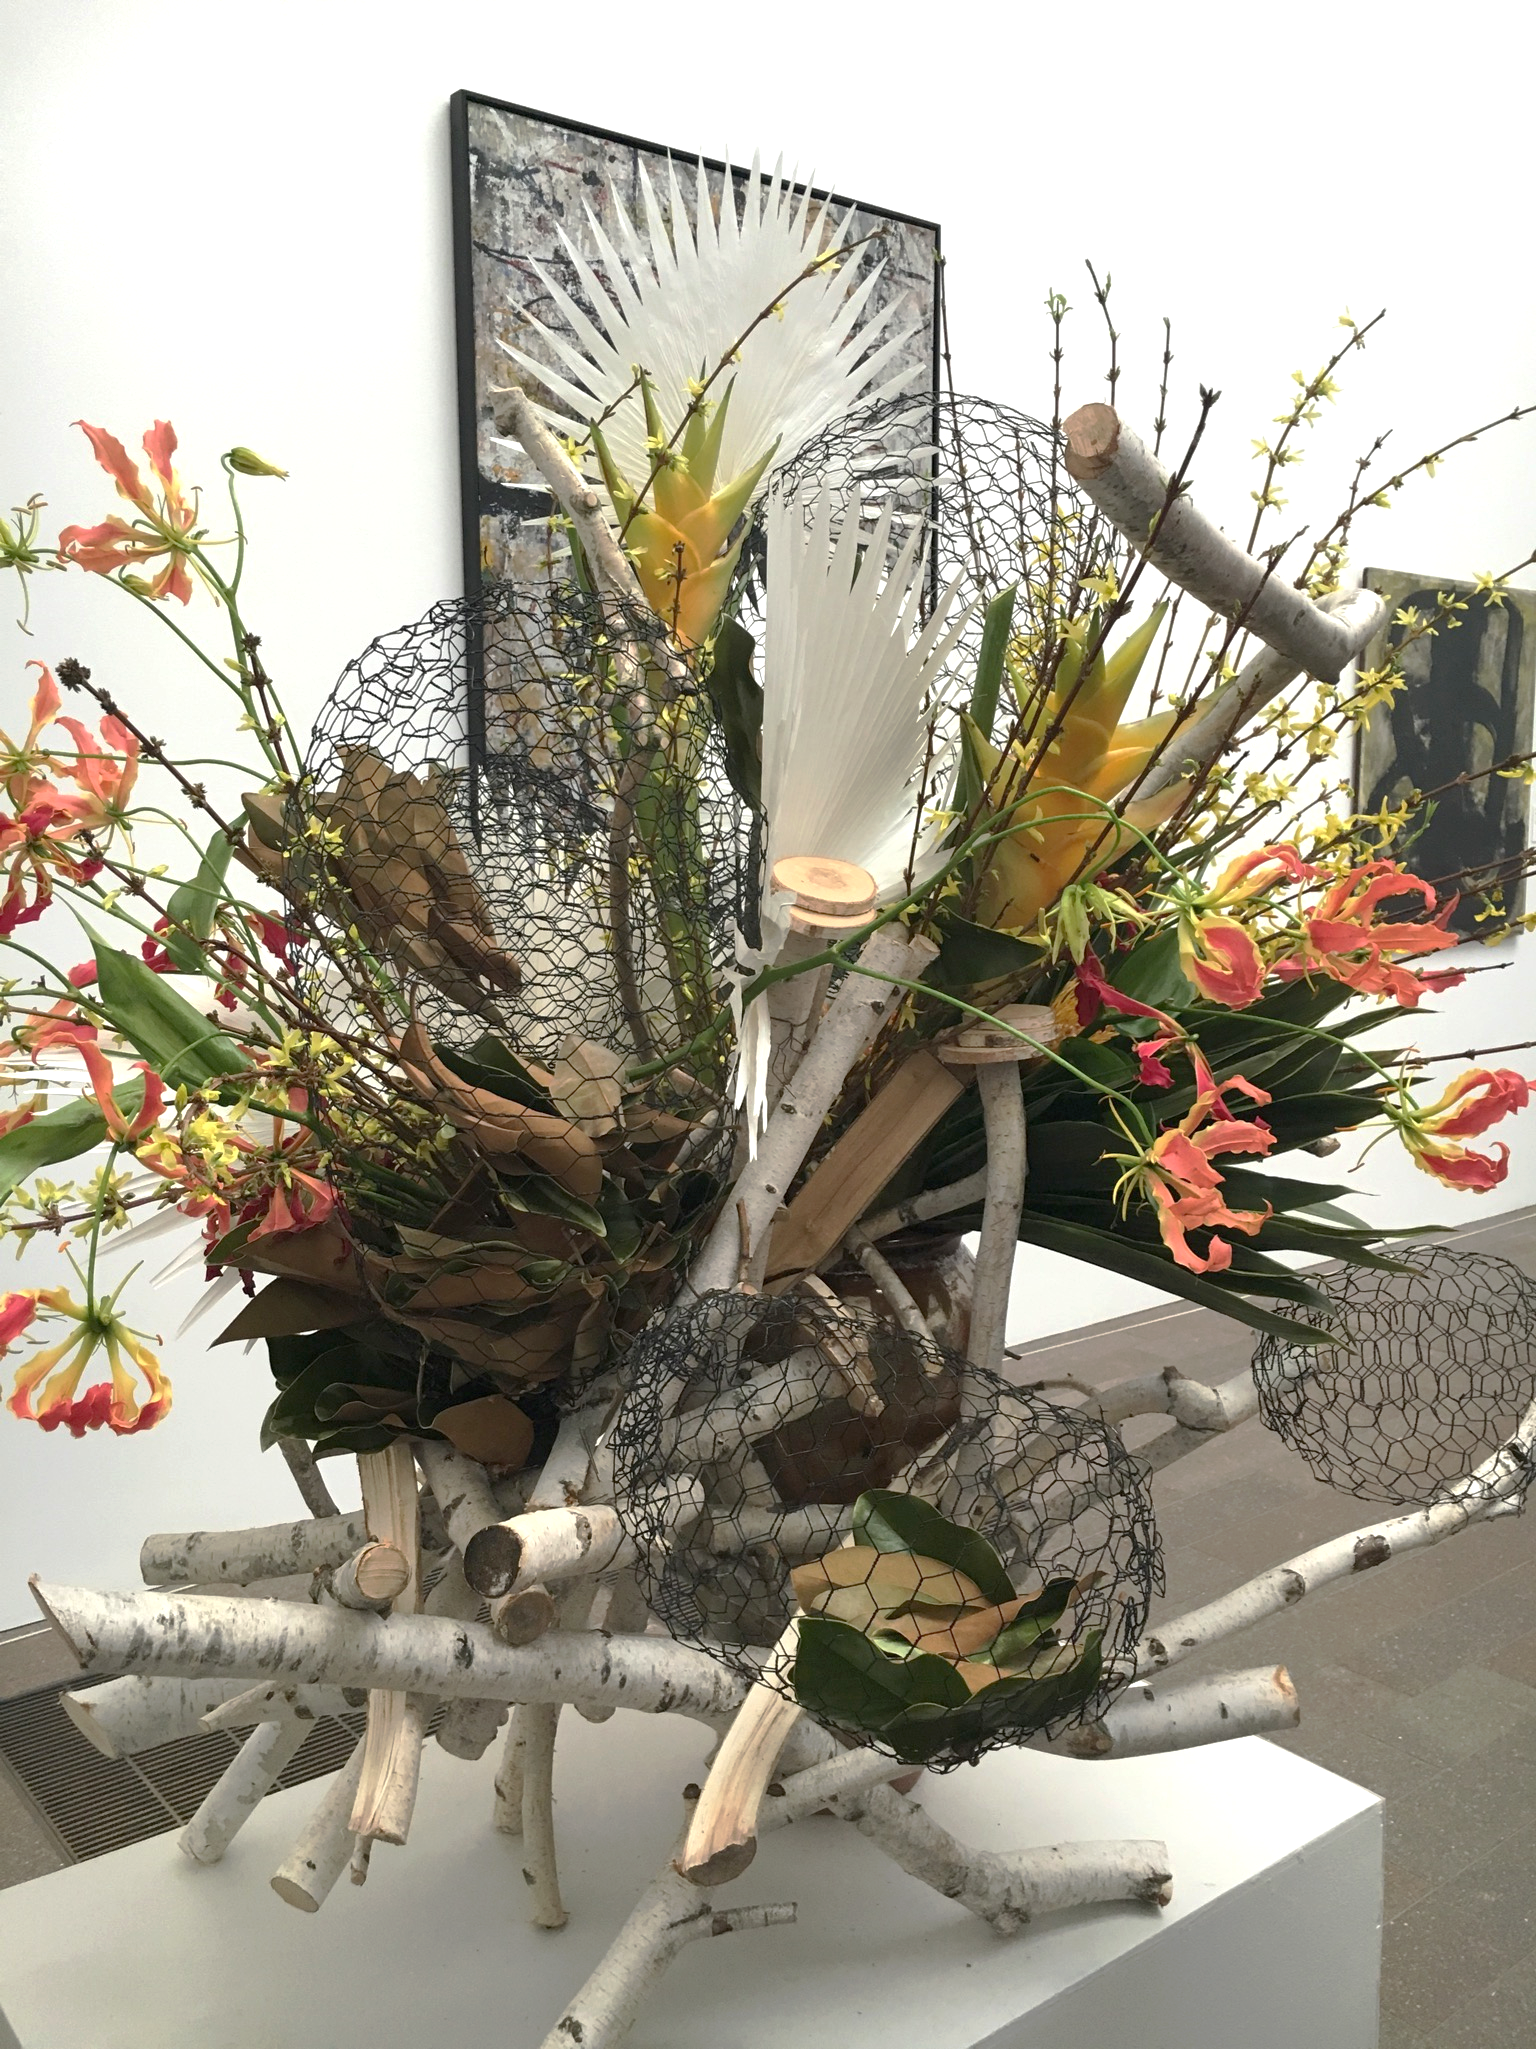 I didn't even get the original piece of art into the photo, but the floral arrangement in and of itself is inspirational. What a crazy dynamic structure.